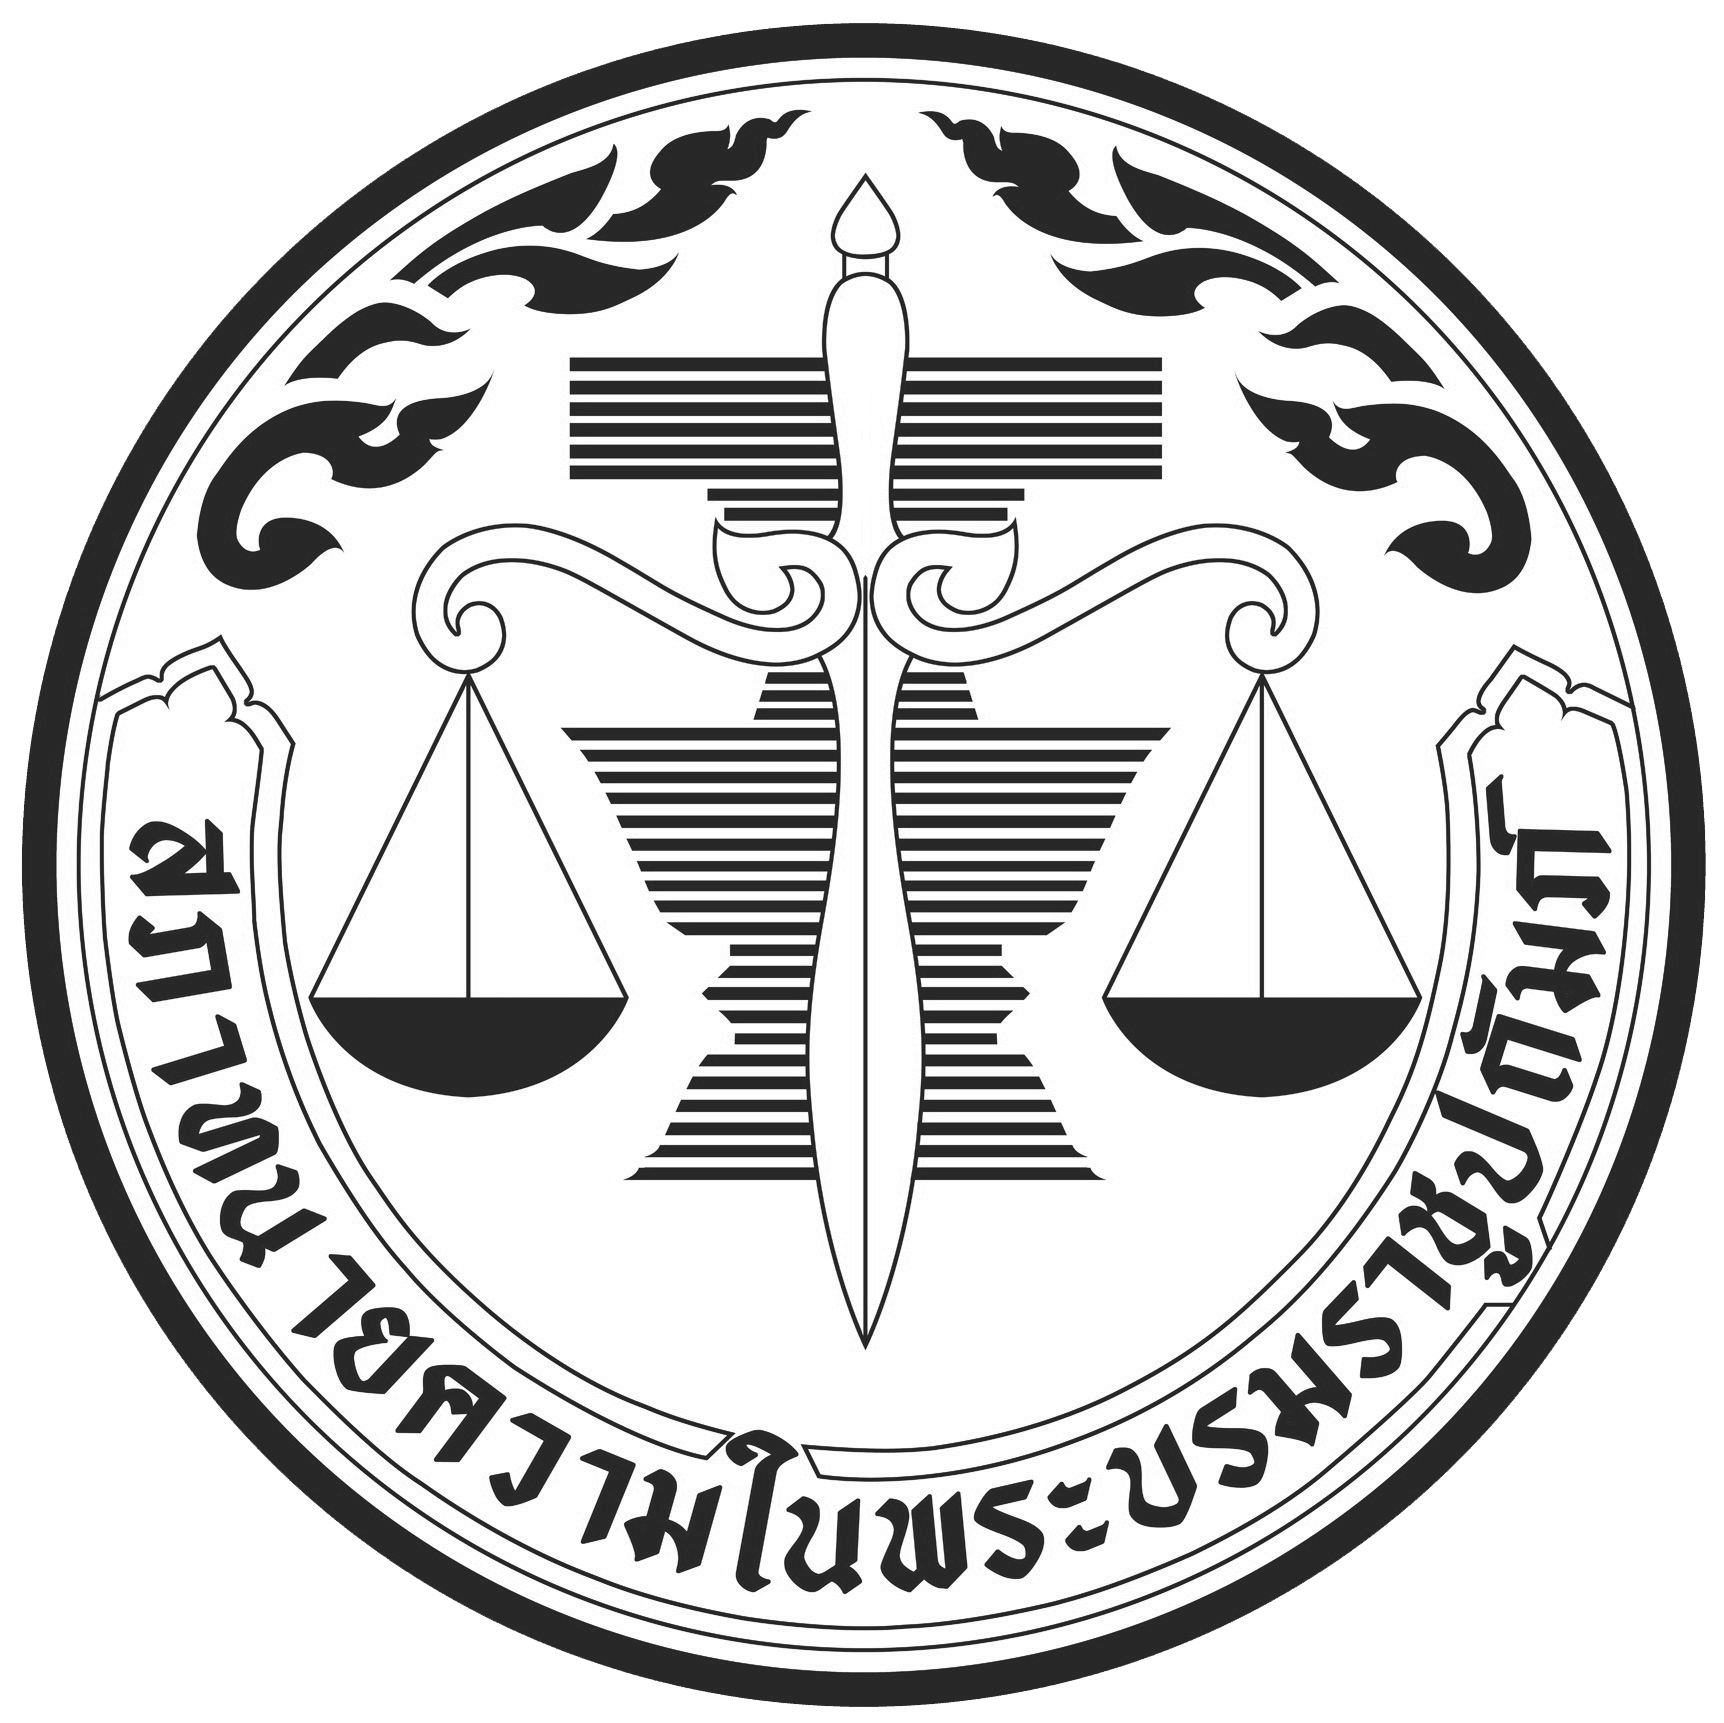 Lawyers Council Under the Royal Patronage